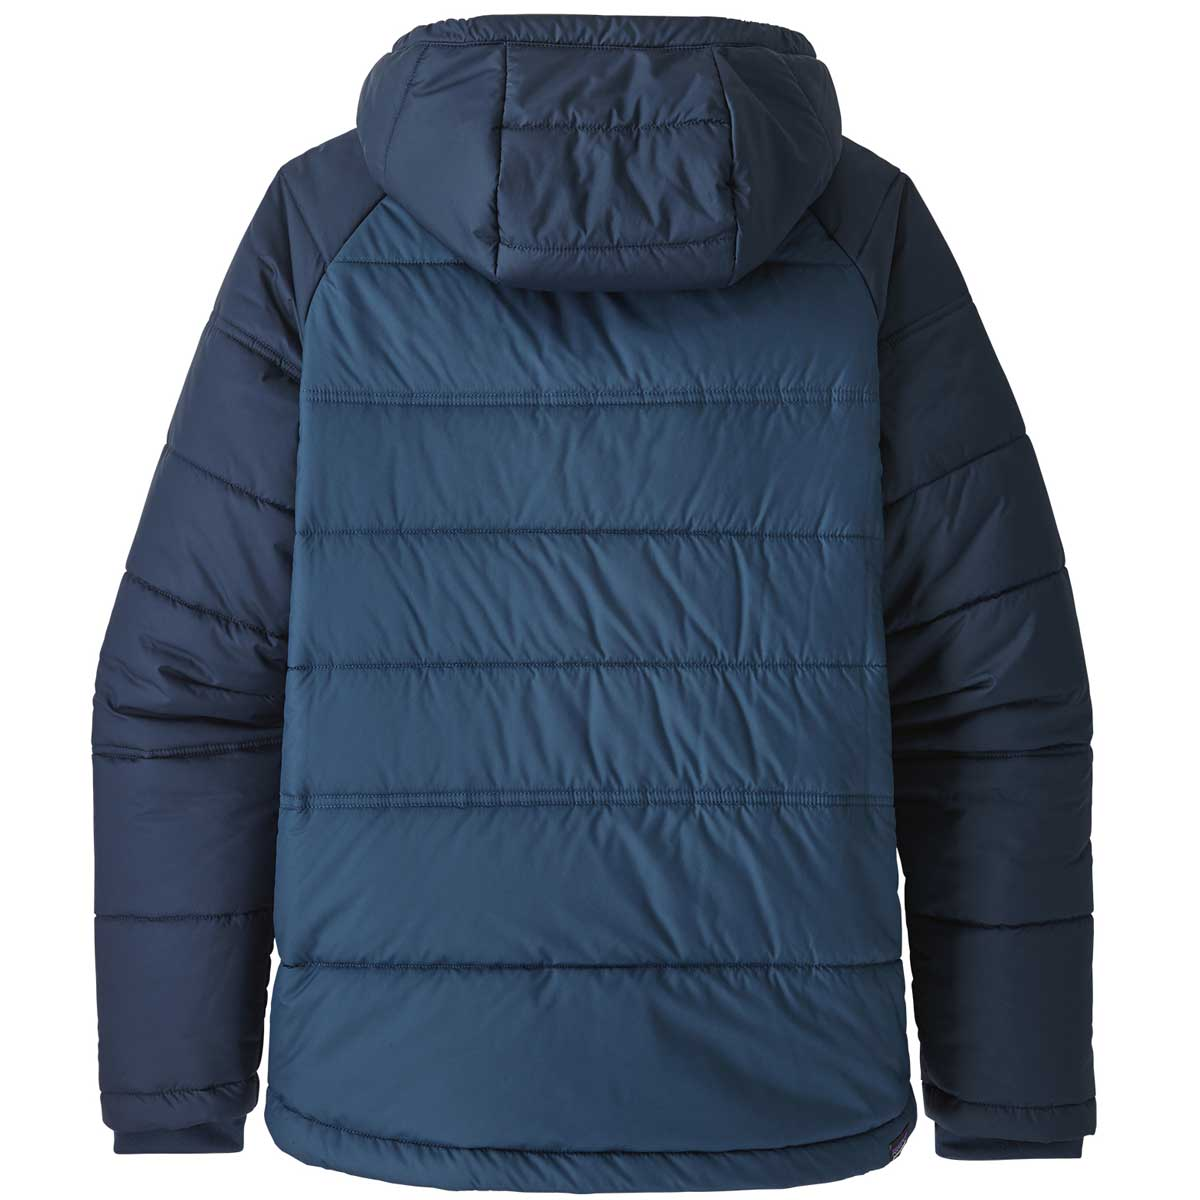 Patagonia boy's Pine Grove Jacket in Stone Blue back view